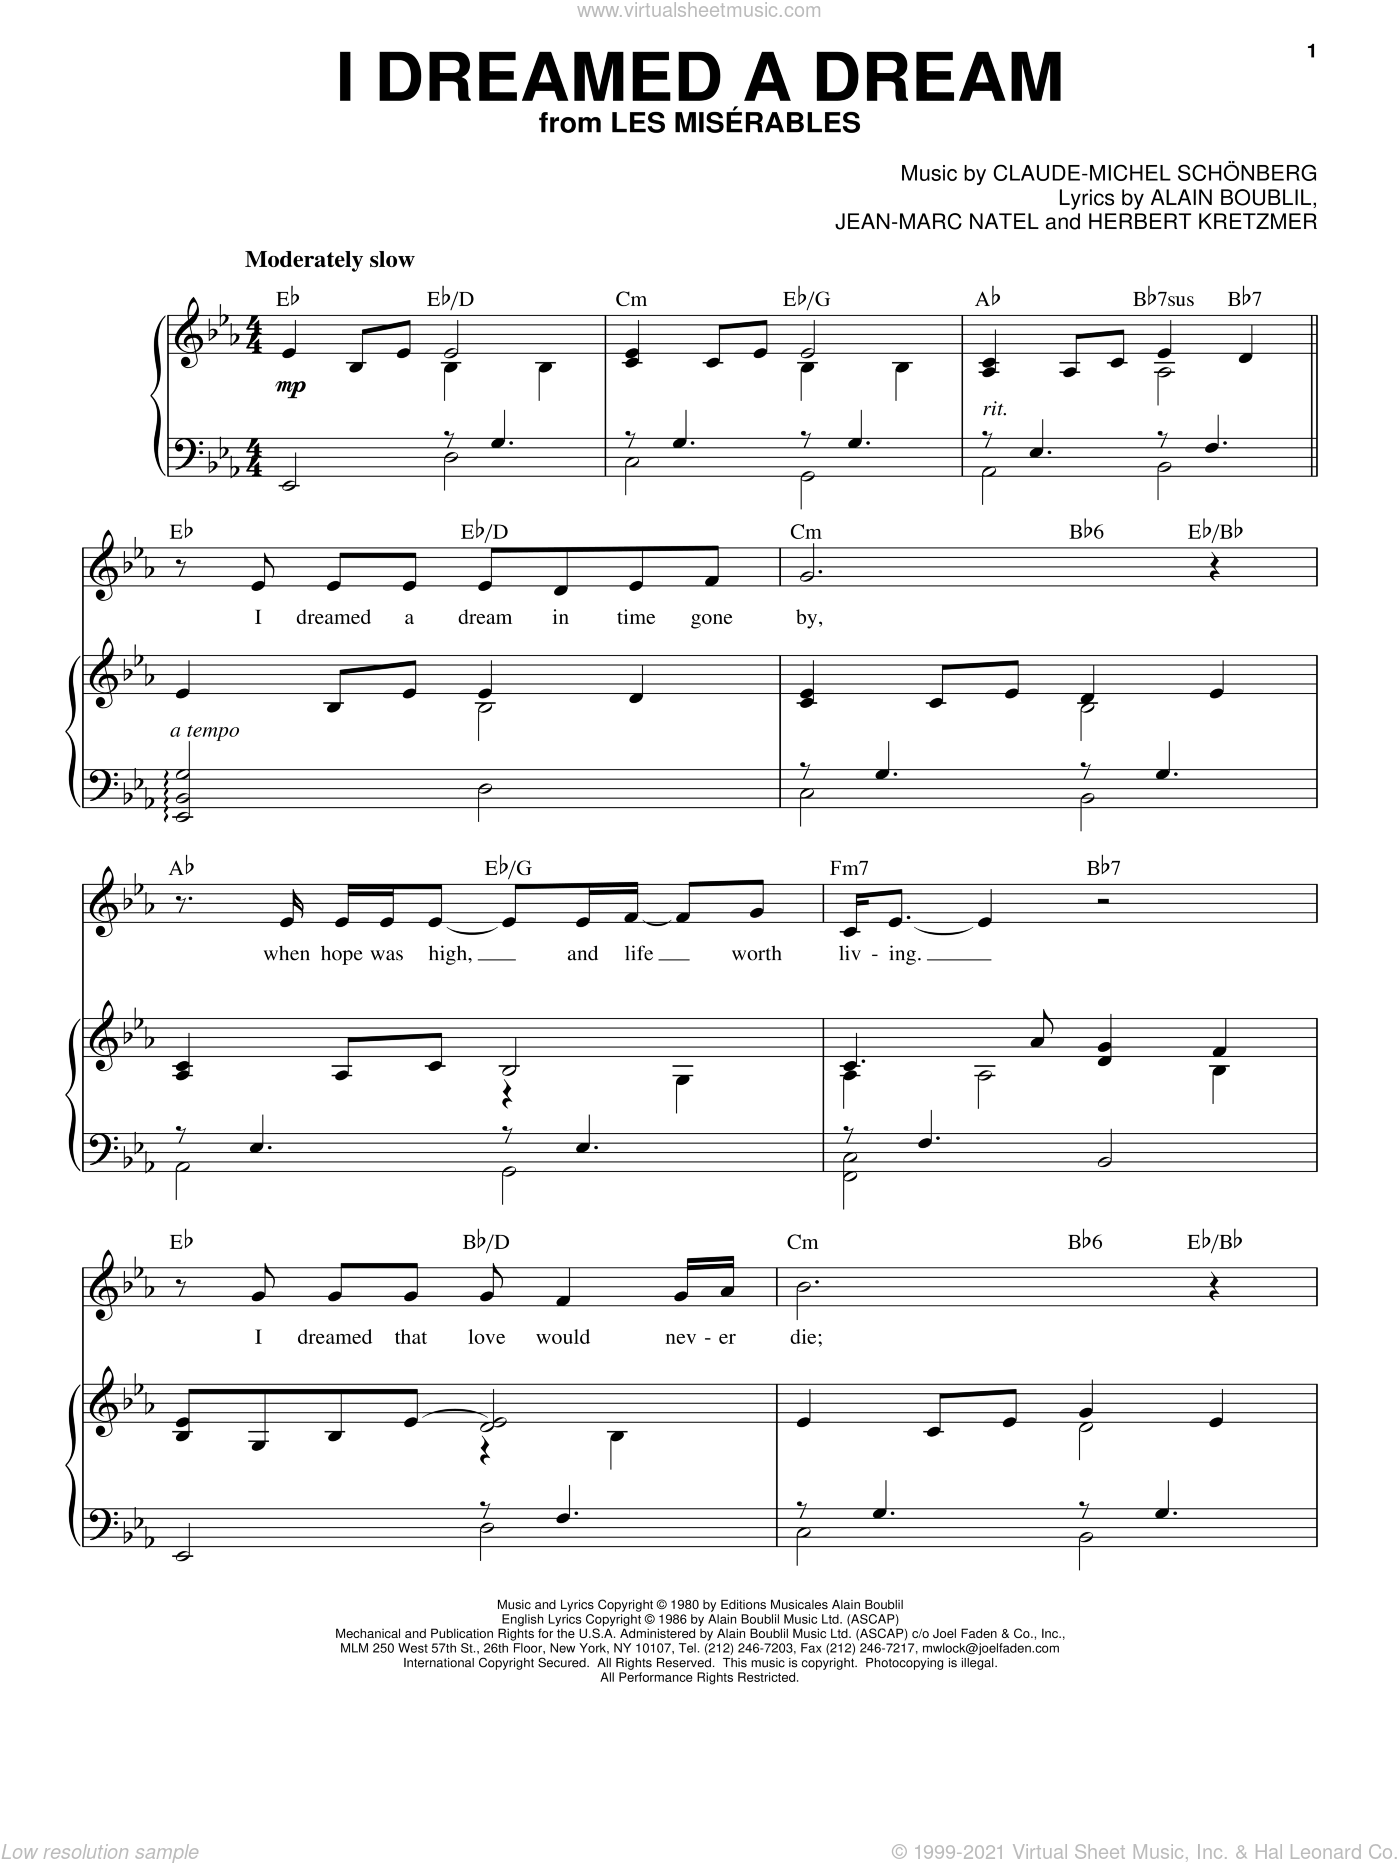 I Dreamed A Dream sheet music for voice and piano by Jean-Marc Natel